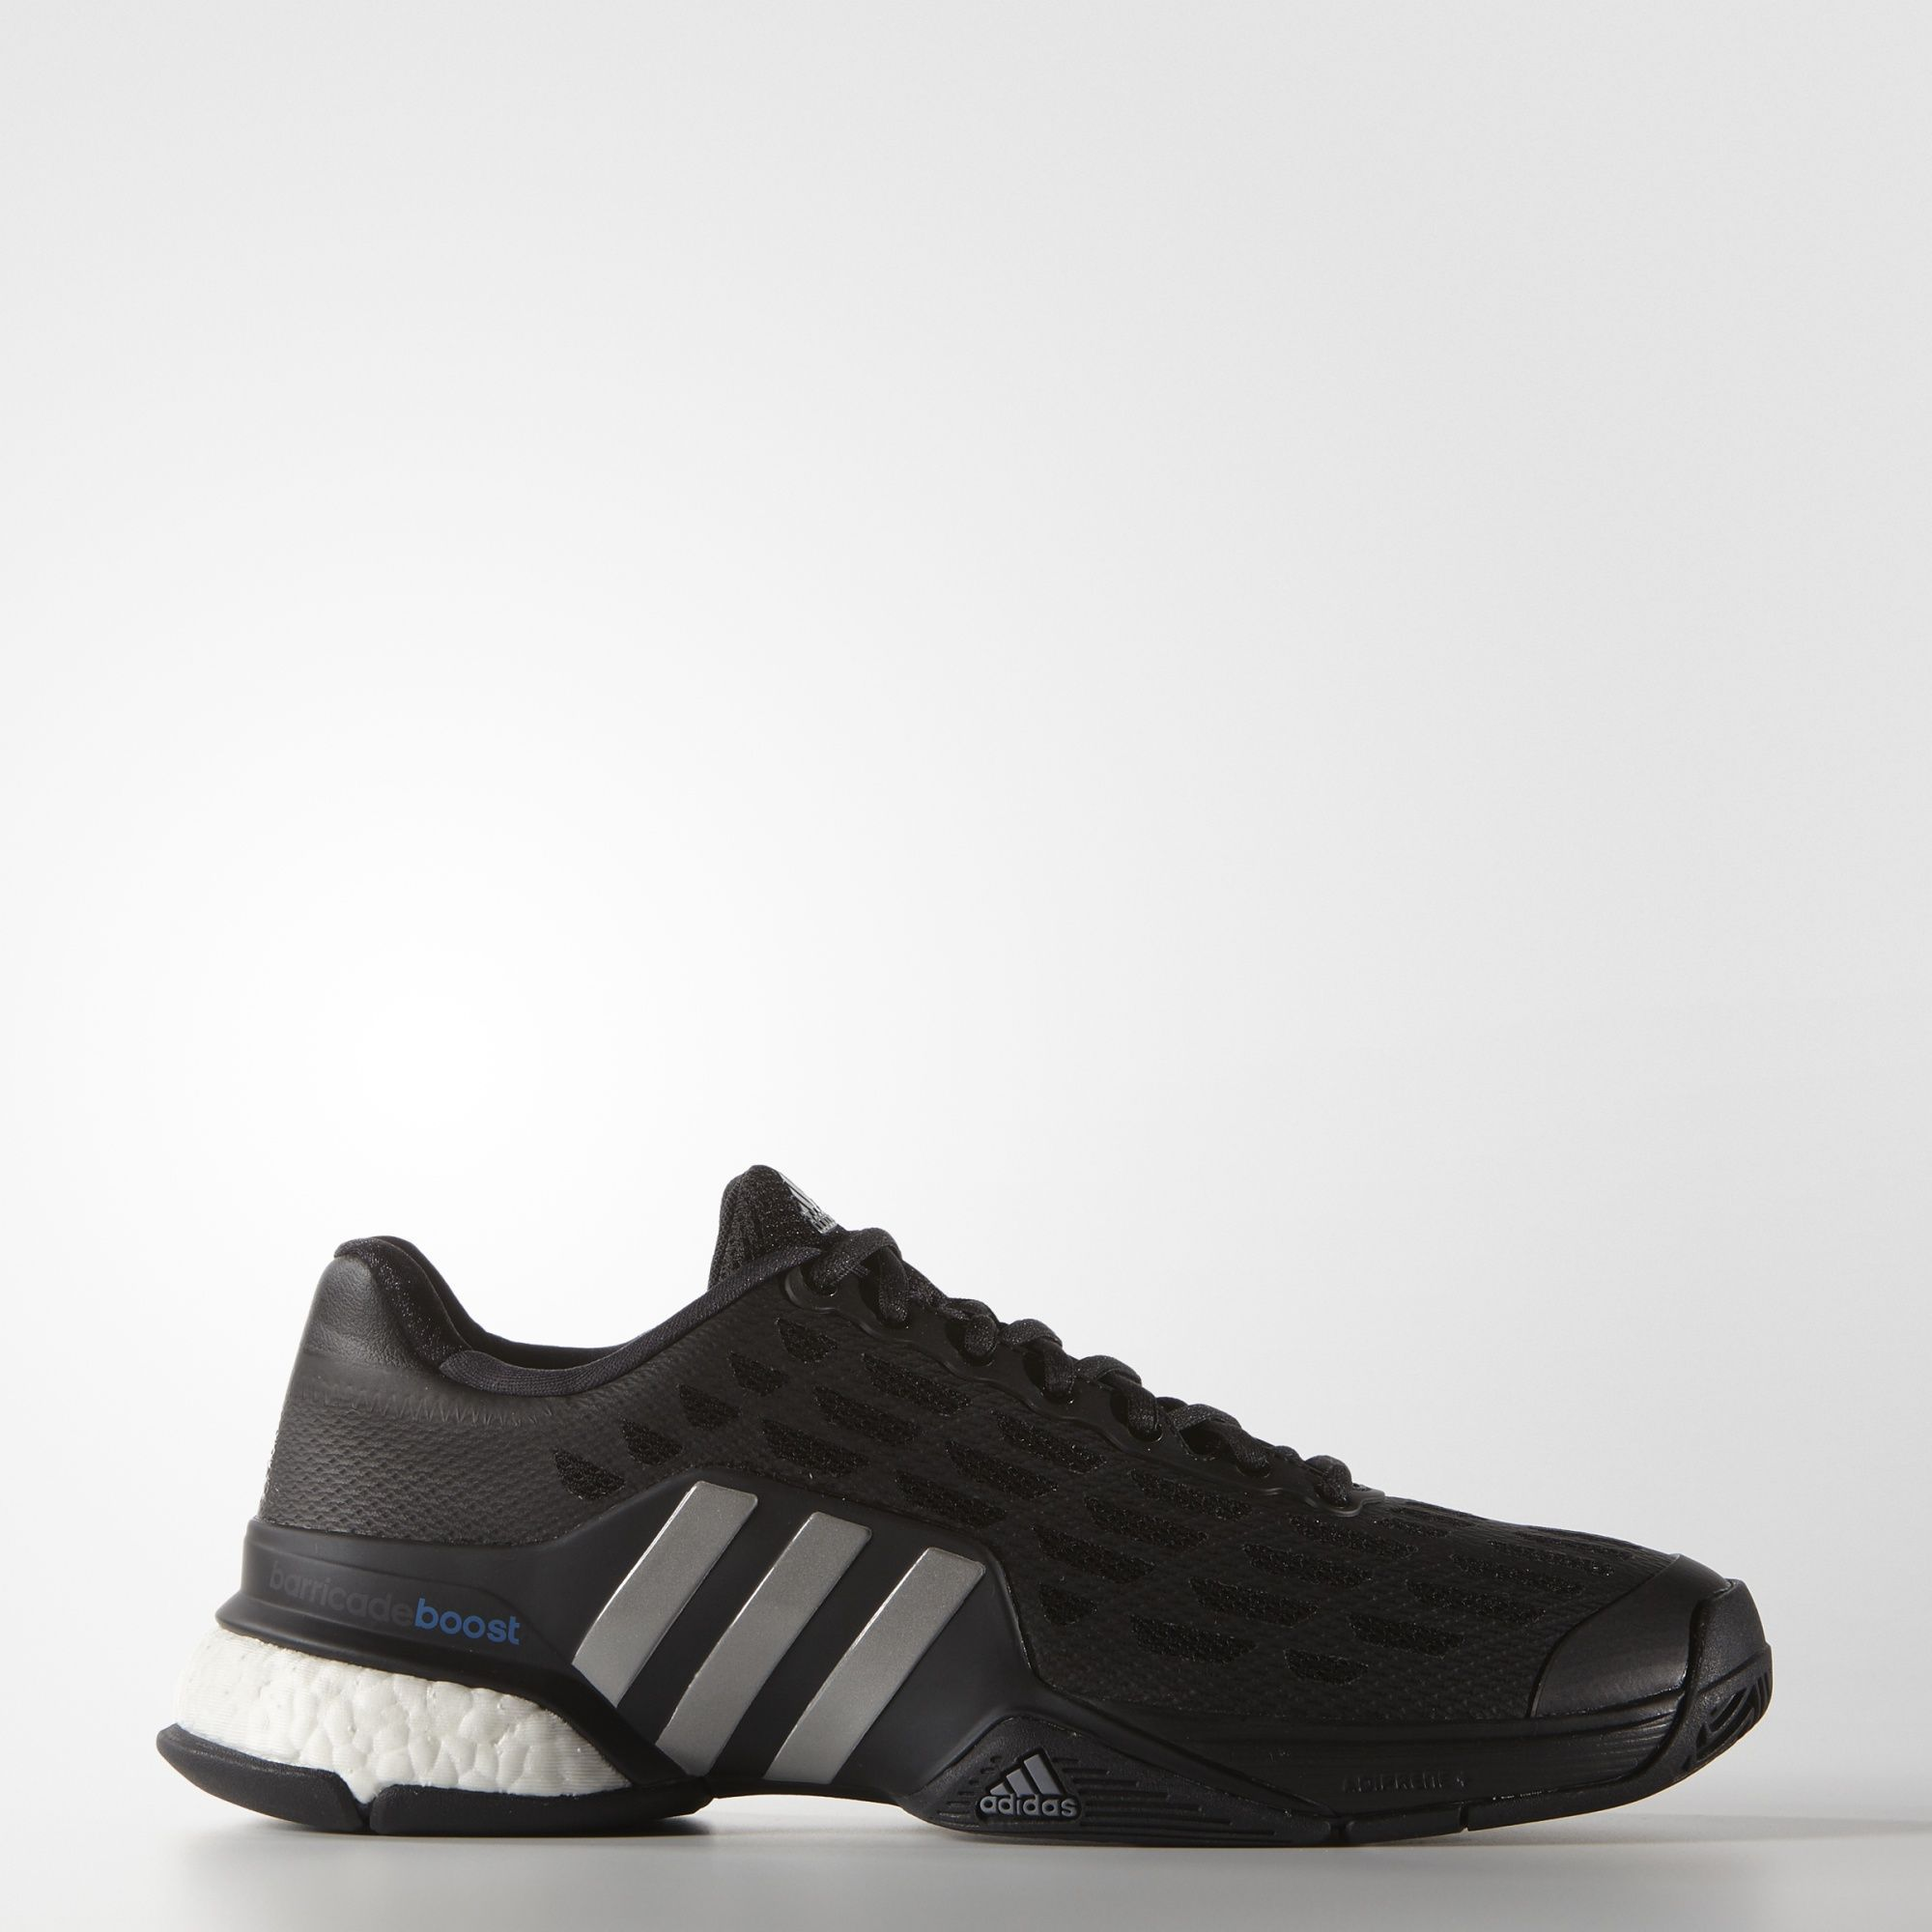 5e4f3c125c9 adidas - Barricade 2016 Boost Shoes